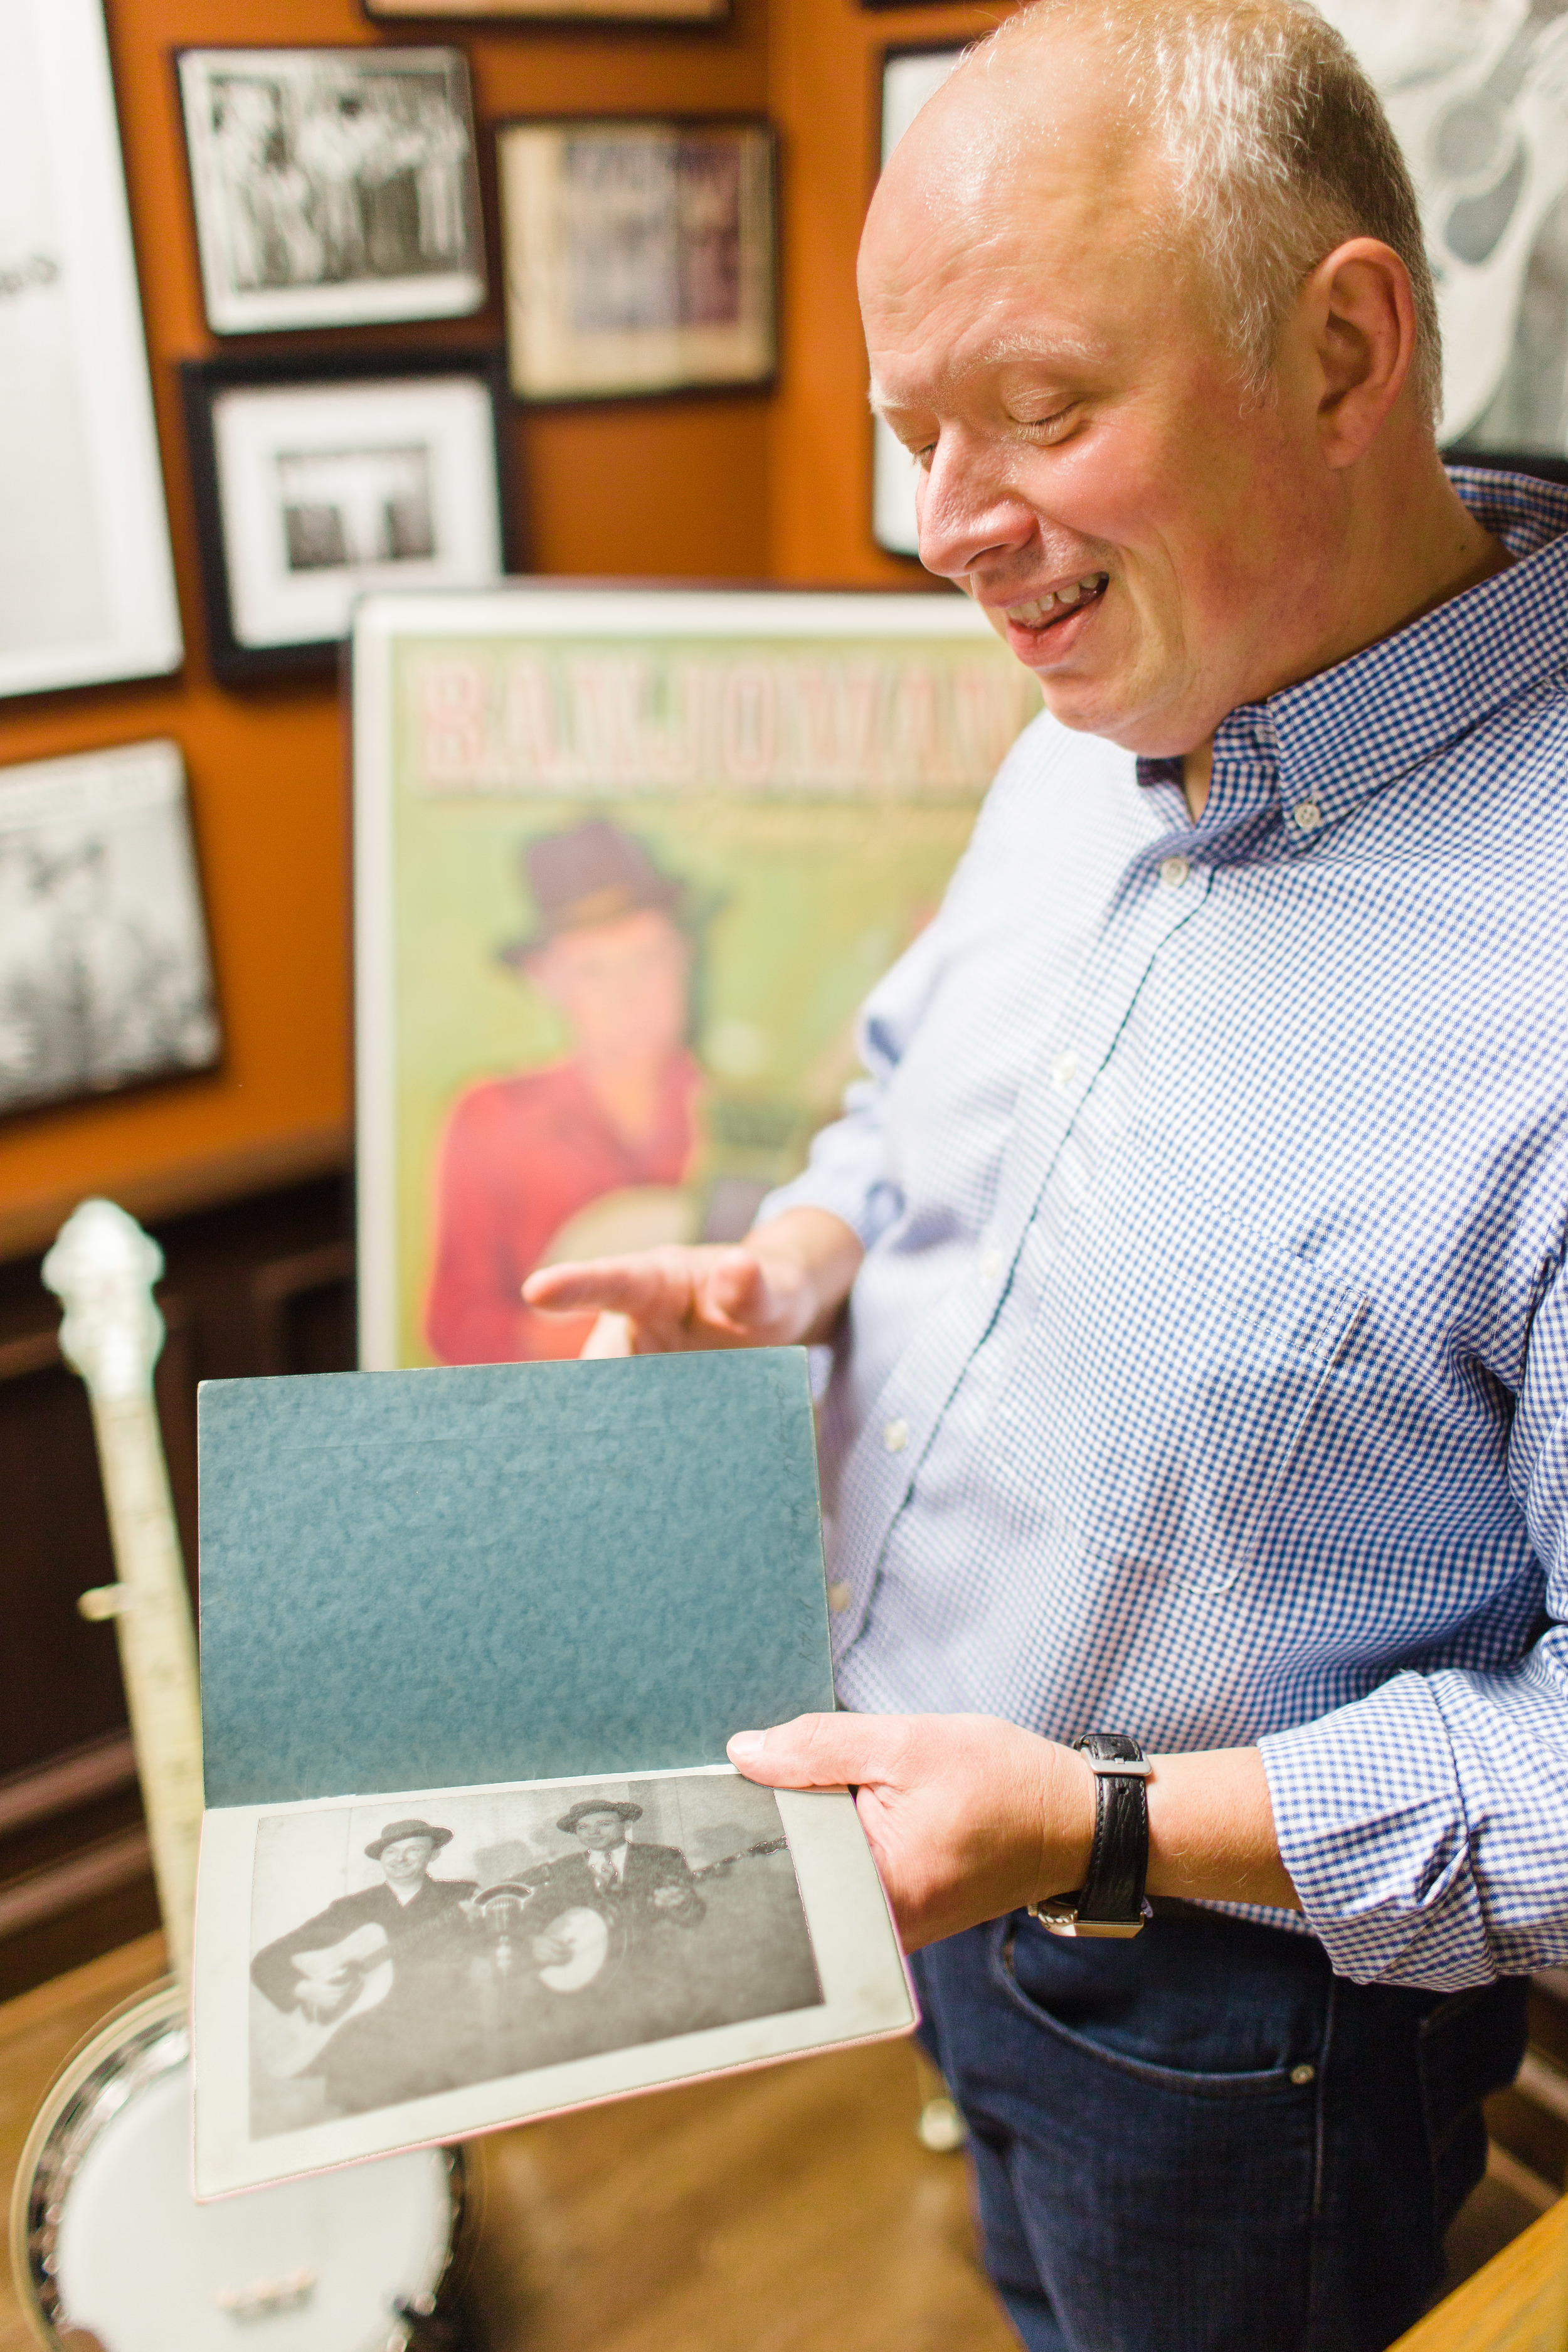 Mills shows an early publicity image of Lester Flatt and Earl Scruggs.